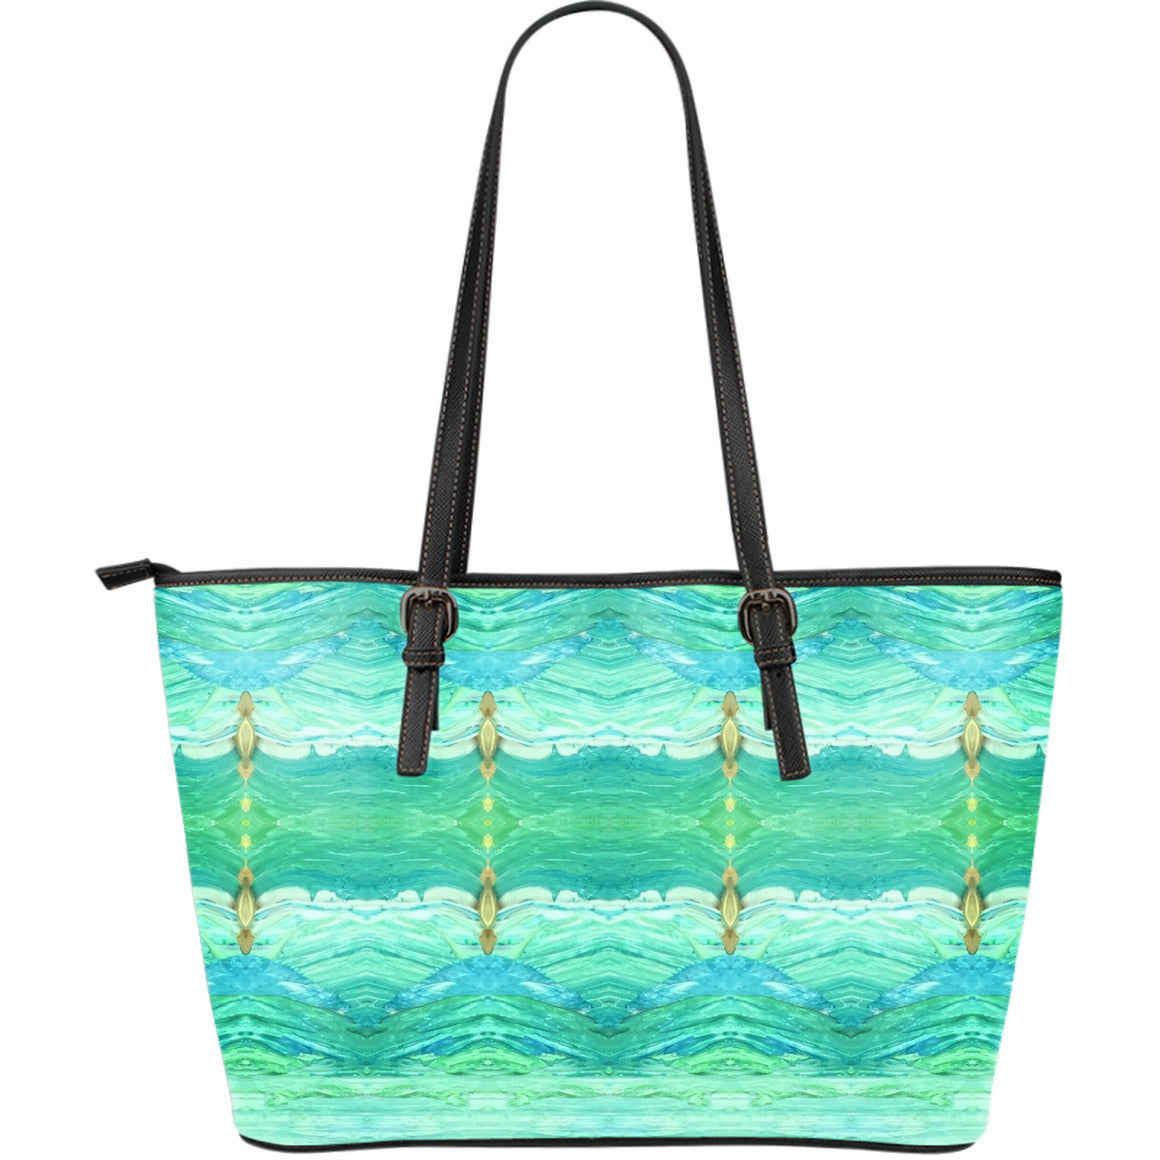 A Sea Green Leather Tote Large